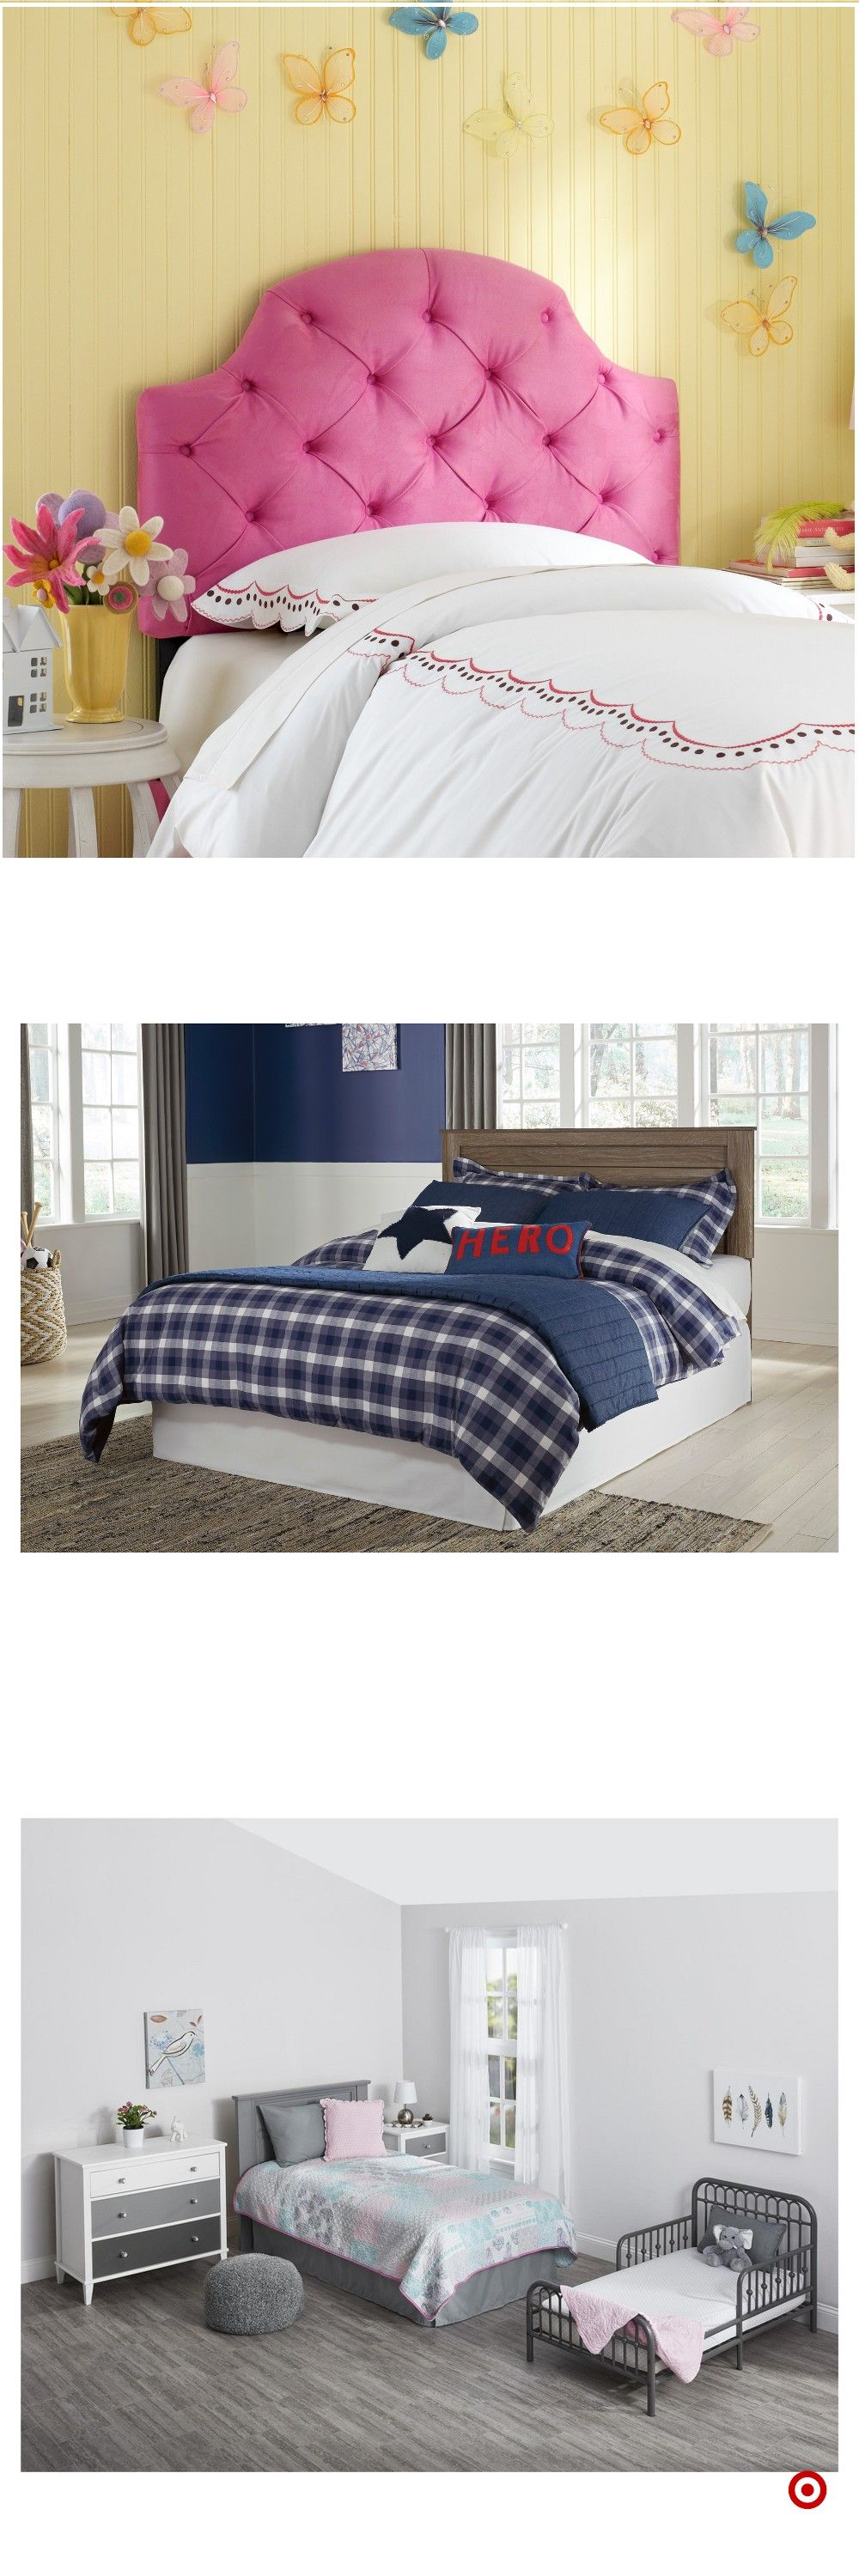 Shop Target For Kids Beds And Headboards You Will Love At